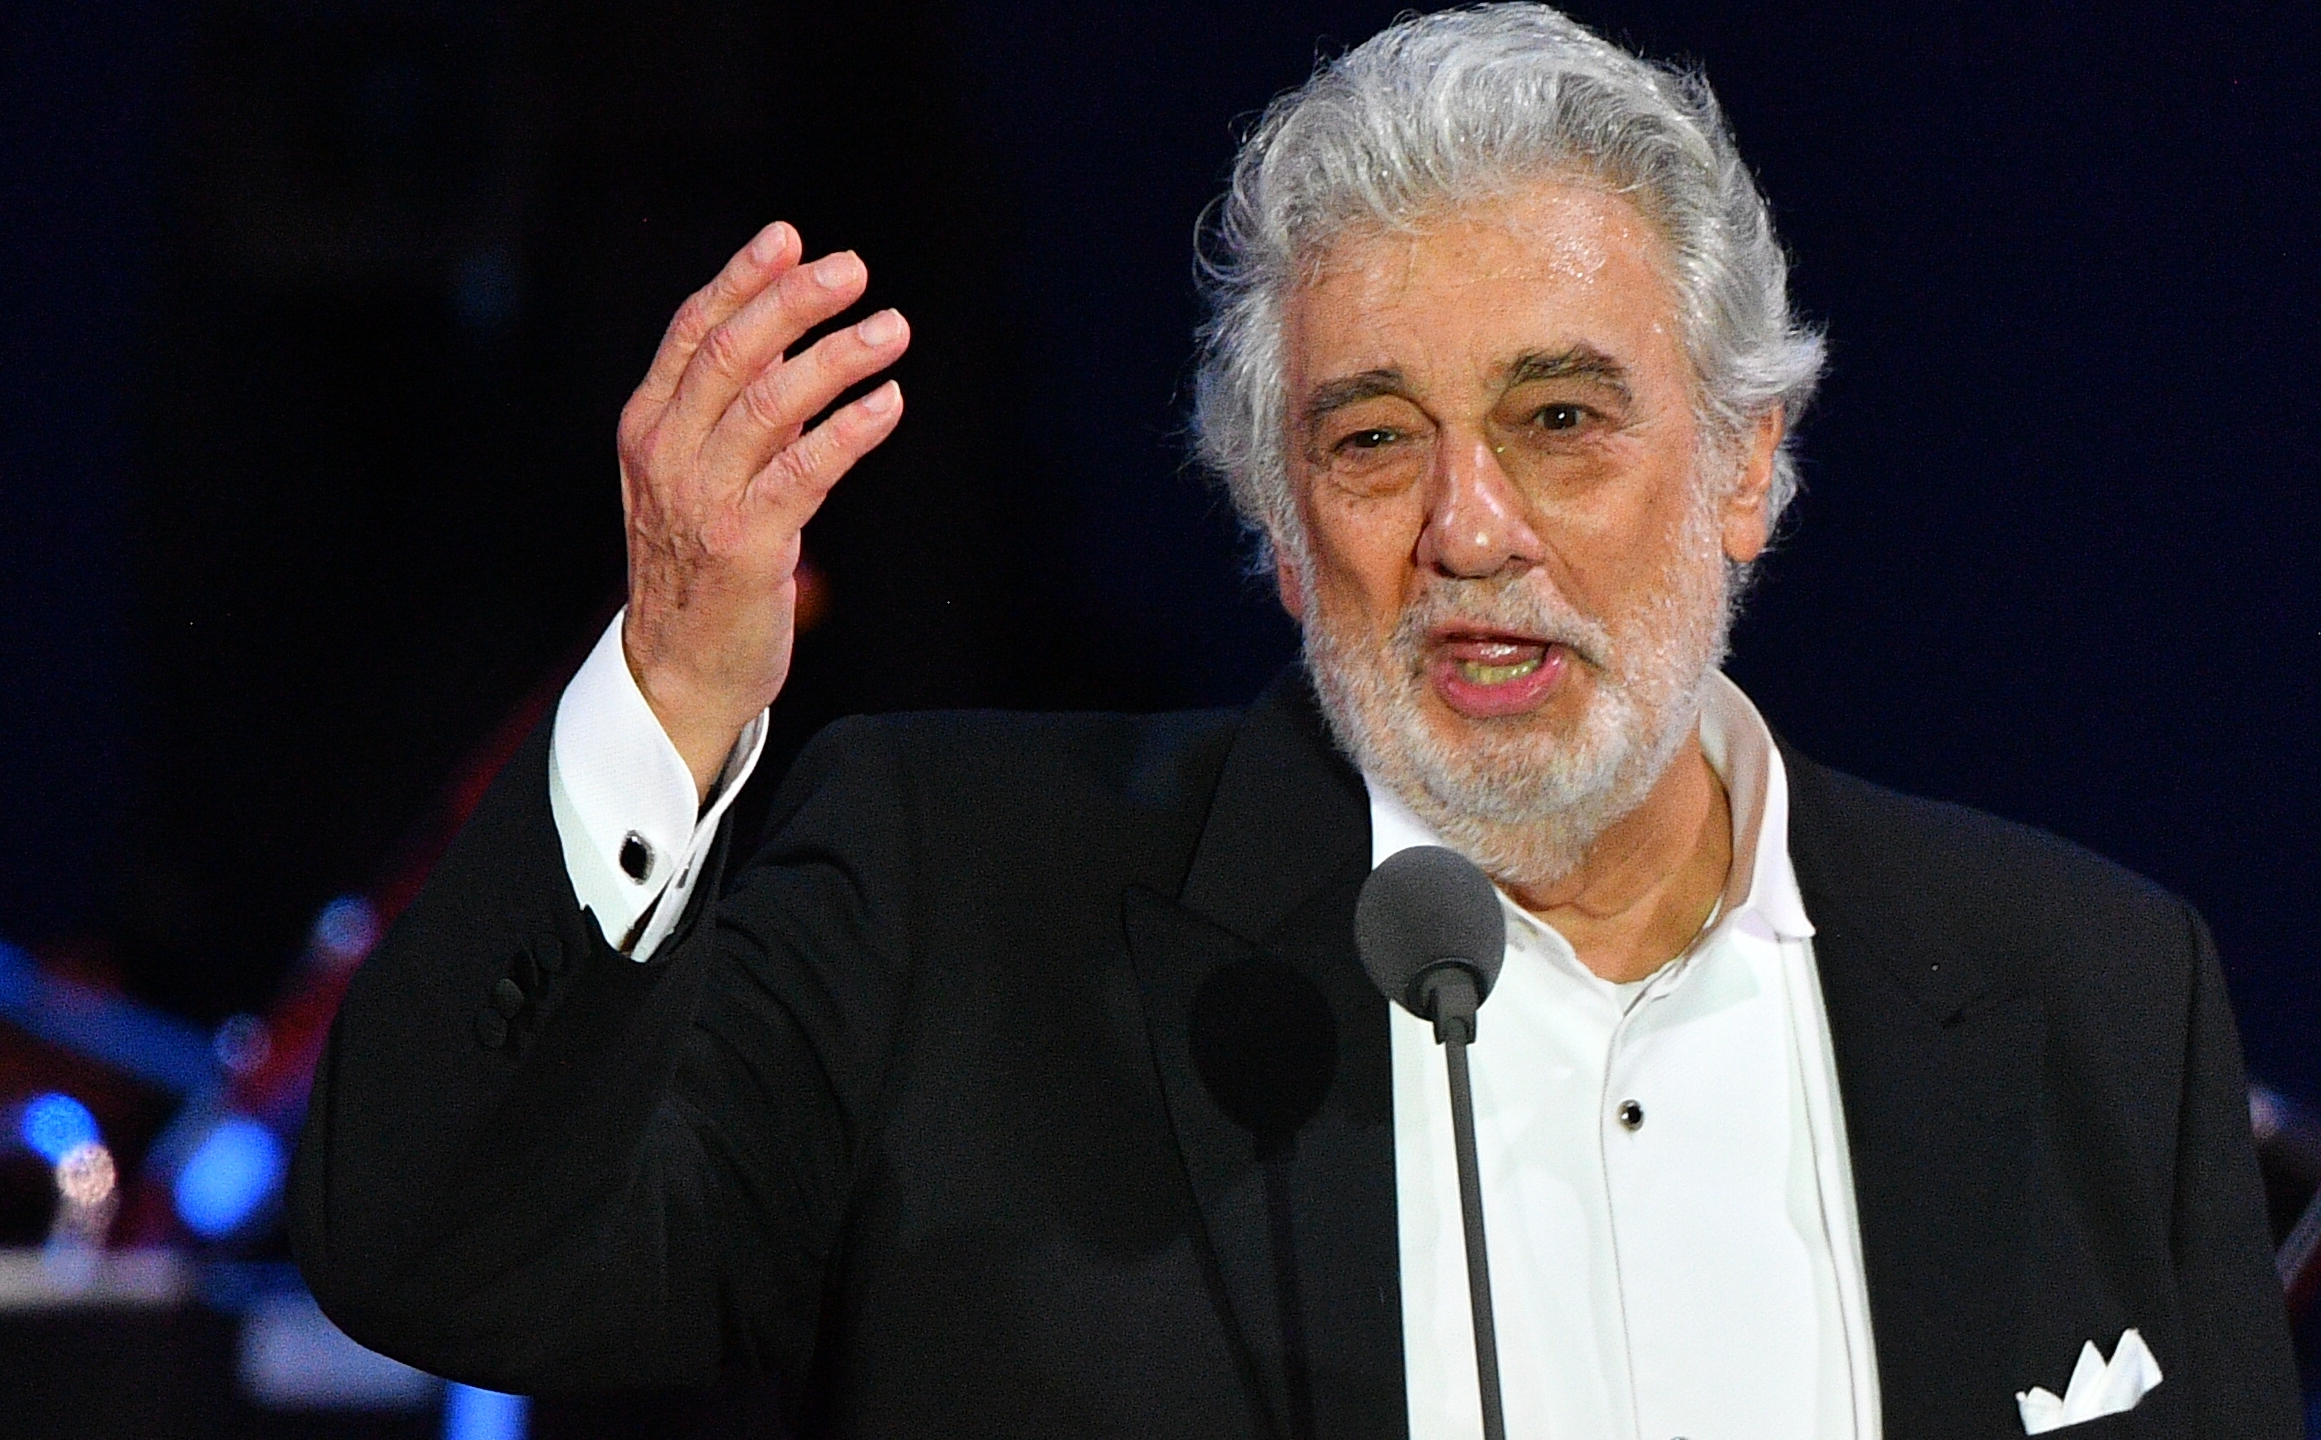 Spanish tenor Placido Domingo gestures as he performs during his concert in the newly inaugurated sports and culture centre 'St Gellert Forum' in Szeged, southern Hungary, on Aug. 28, 2019. (Credit: ATTILA KISBENEDEK/AFP/Getty Images)